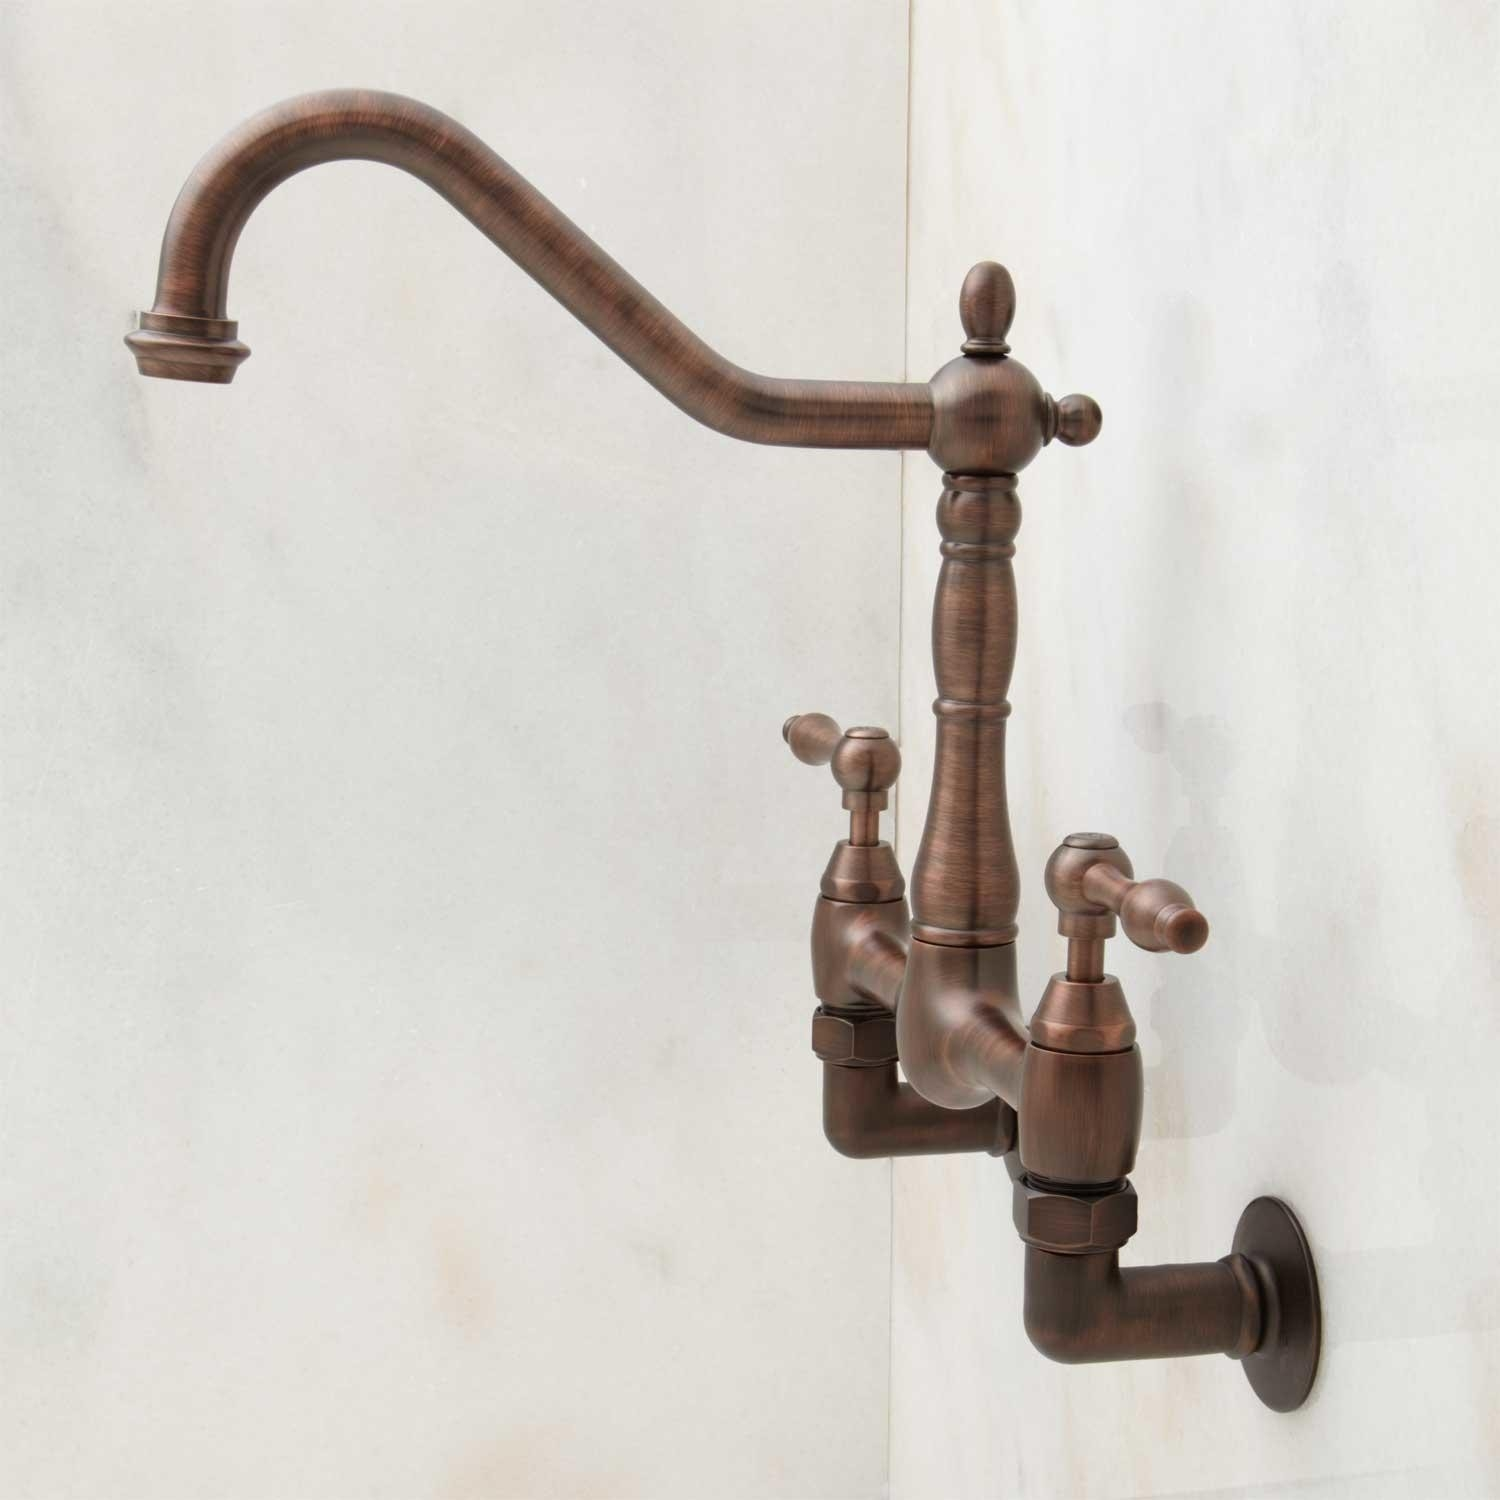 Ideas, bathroom elegant wall mount kitchen faucet for kitchen or intended for proportions 1500 x 1500  .